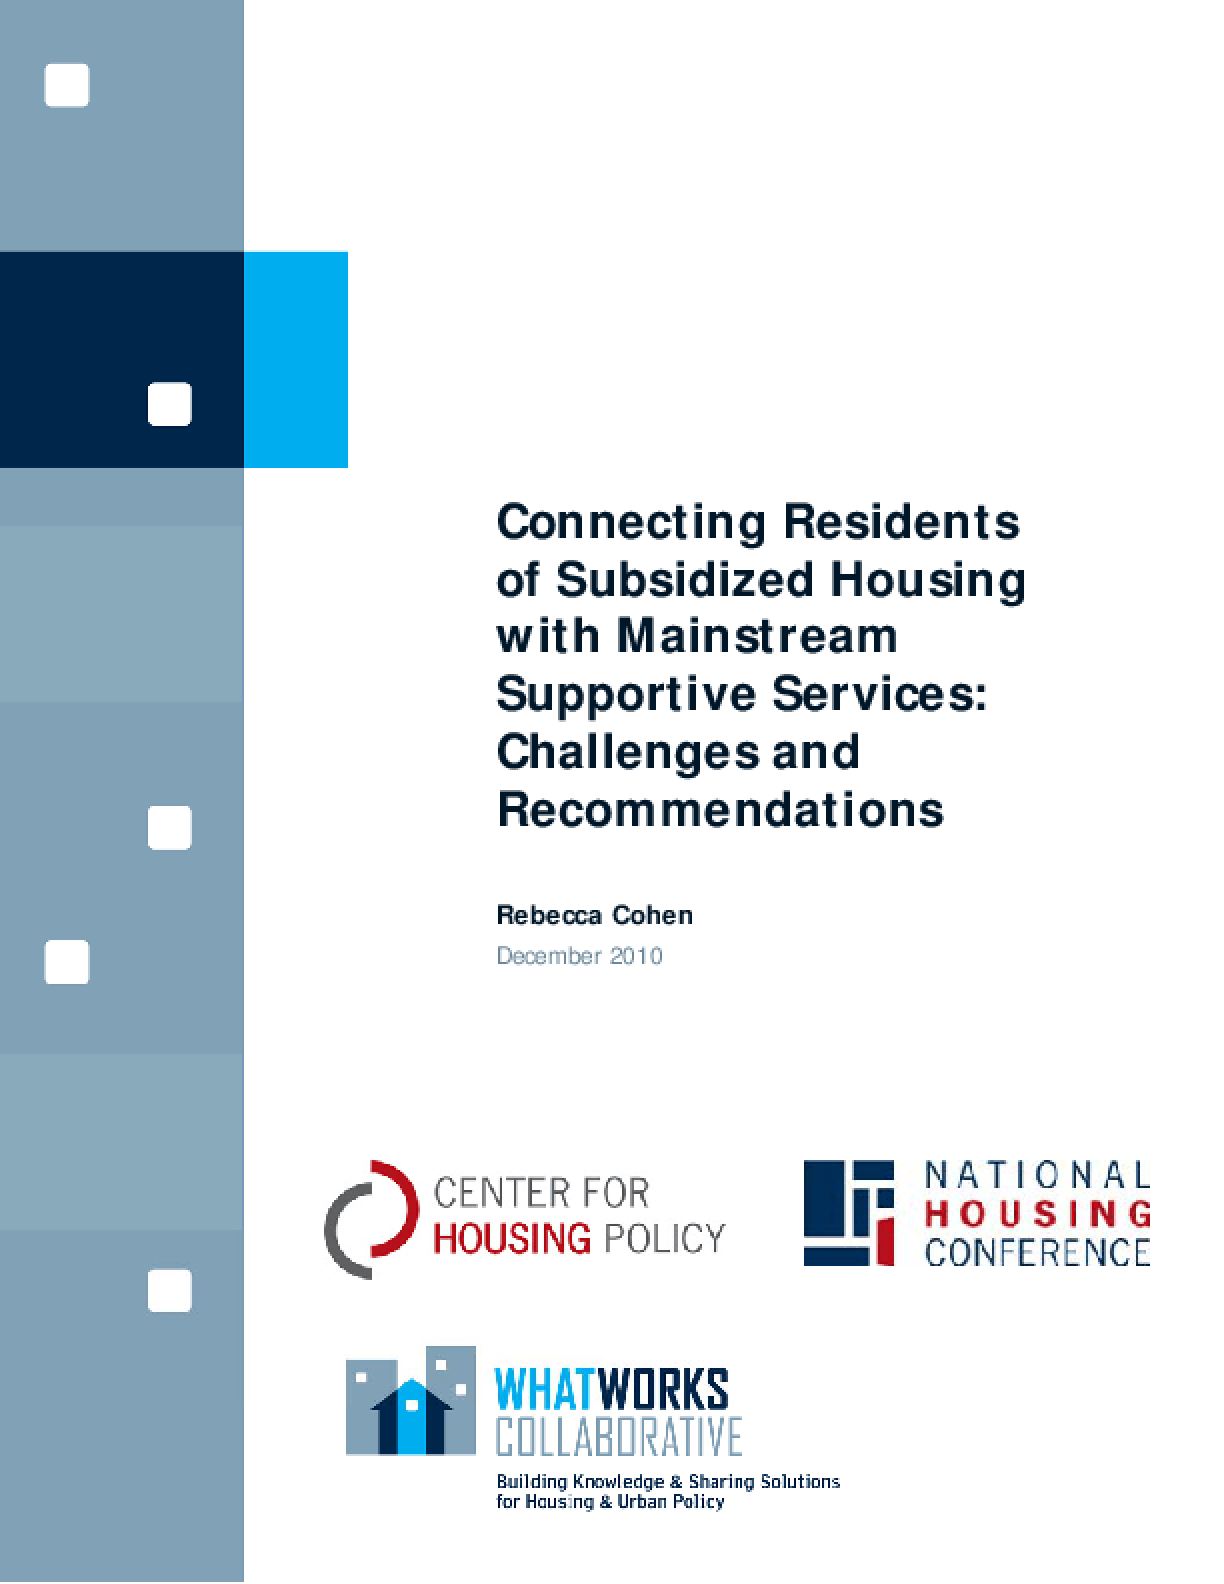 Connecting Residents of Subsidized Housing With Mainstream Supportive Services: Challenges and Recommendations